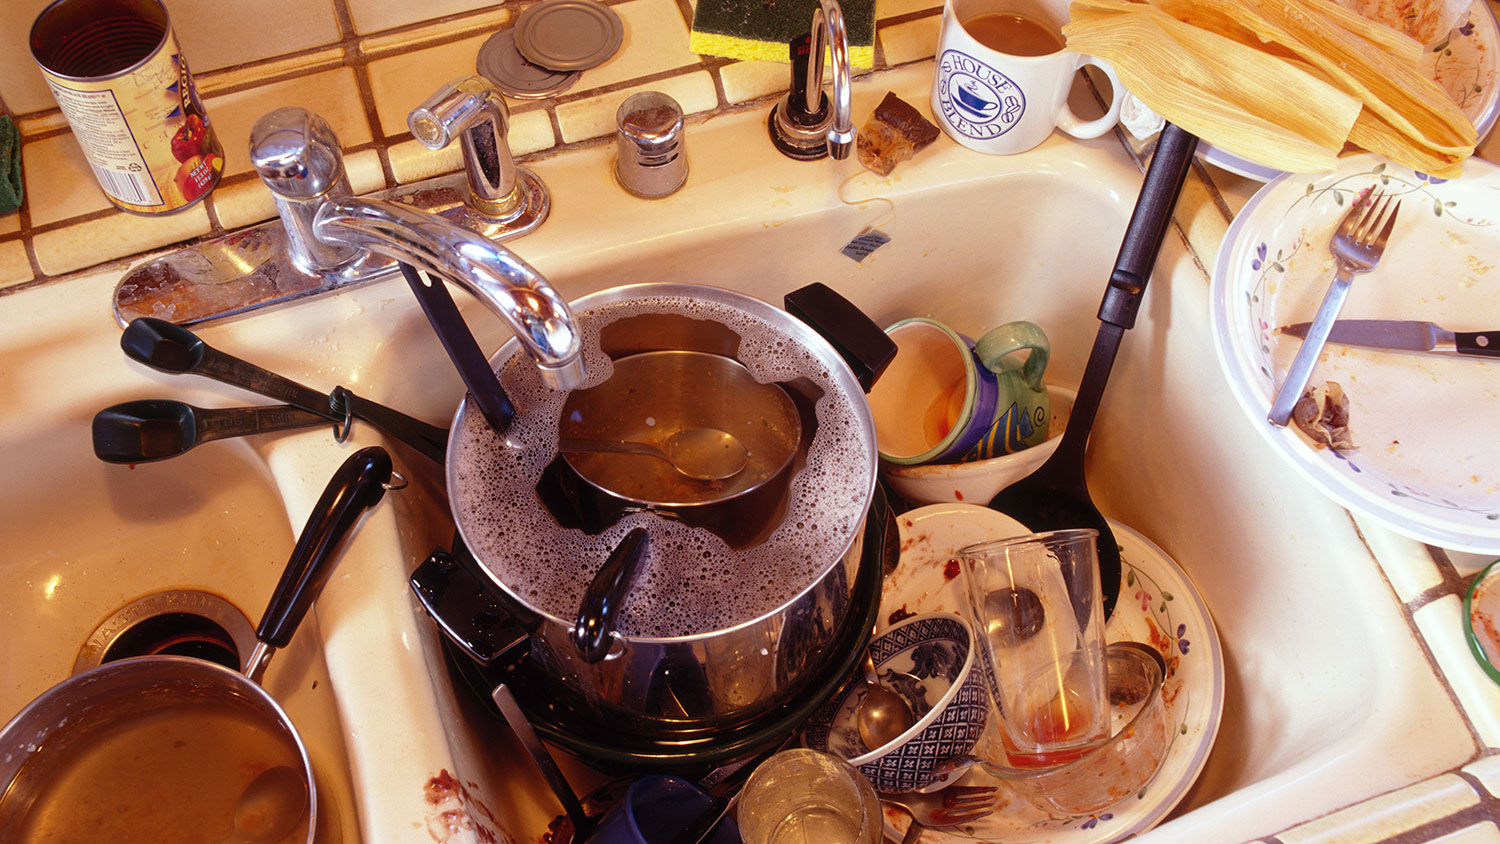 """This Guy Curated a """"Passive-Aggressive Art Gallery"""" of Messes Made By His Roommates"""